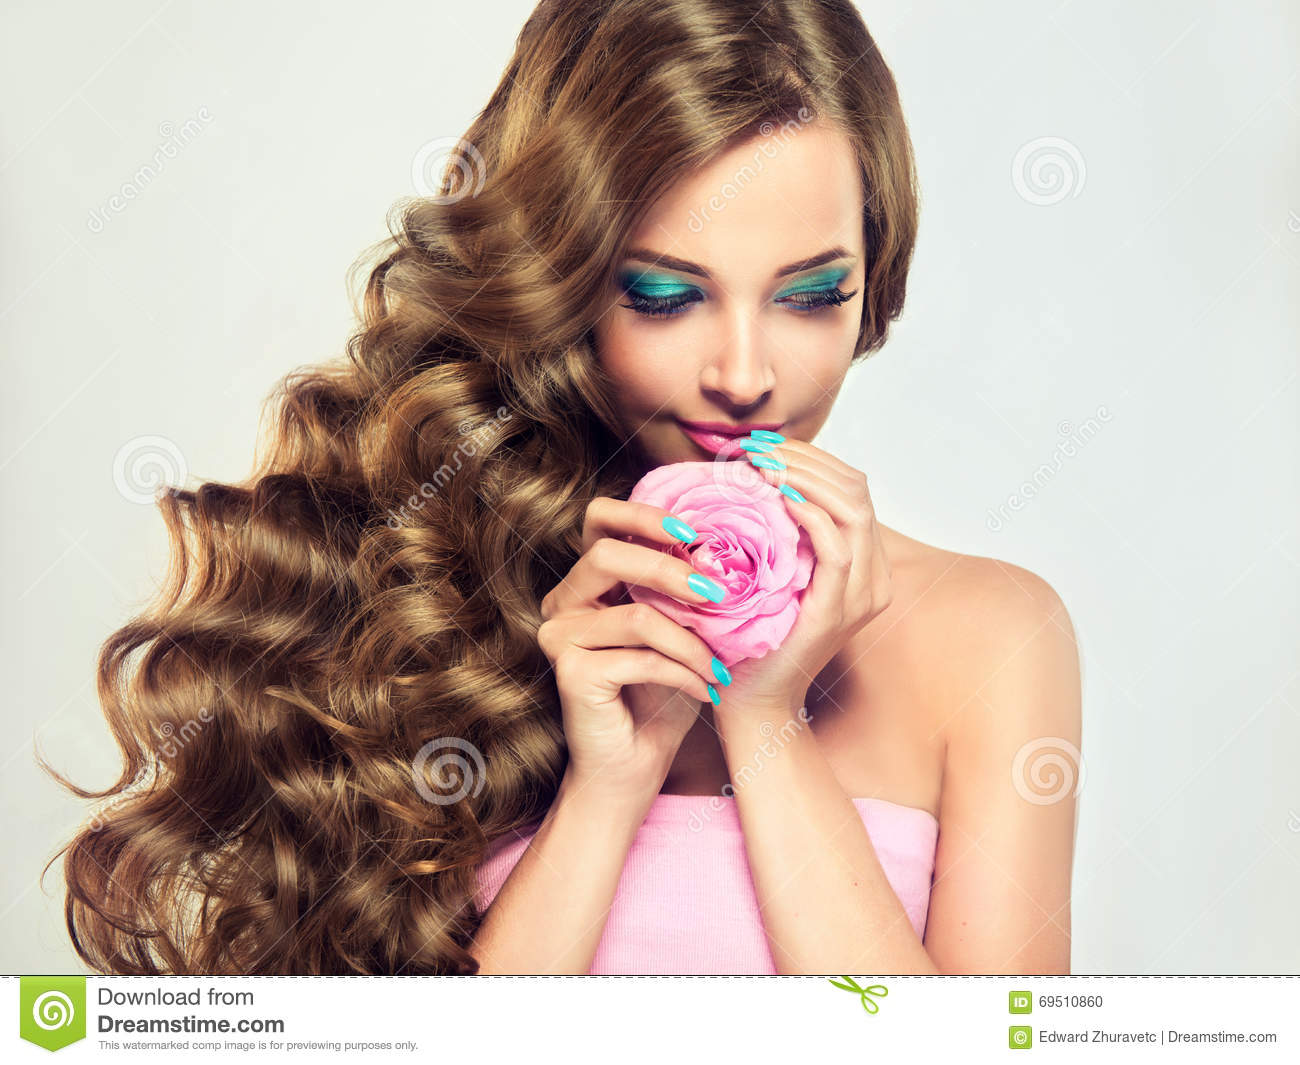 make the hair style luxury fashion style nails manicure cosmetics and make 5145 | luxury fashion style nails manicure cosmetics make up beautiful model brunette long lush curled hair pale pink rose 69510860